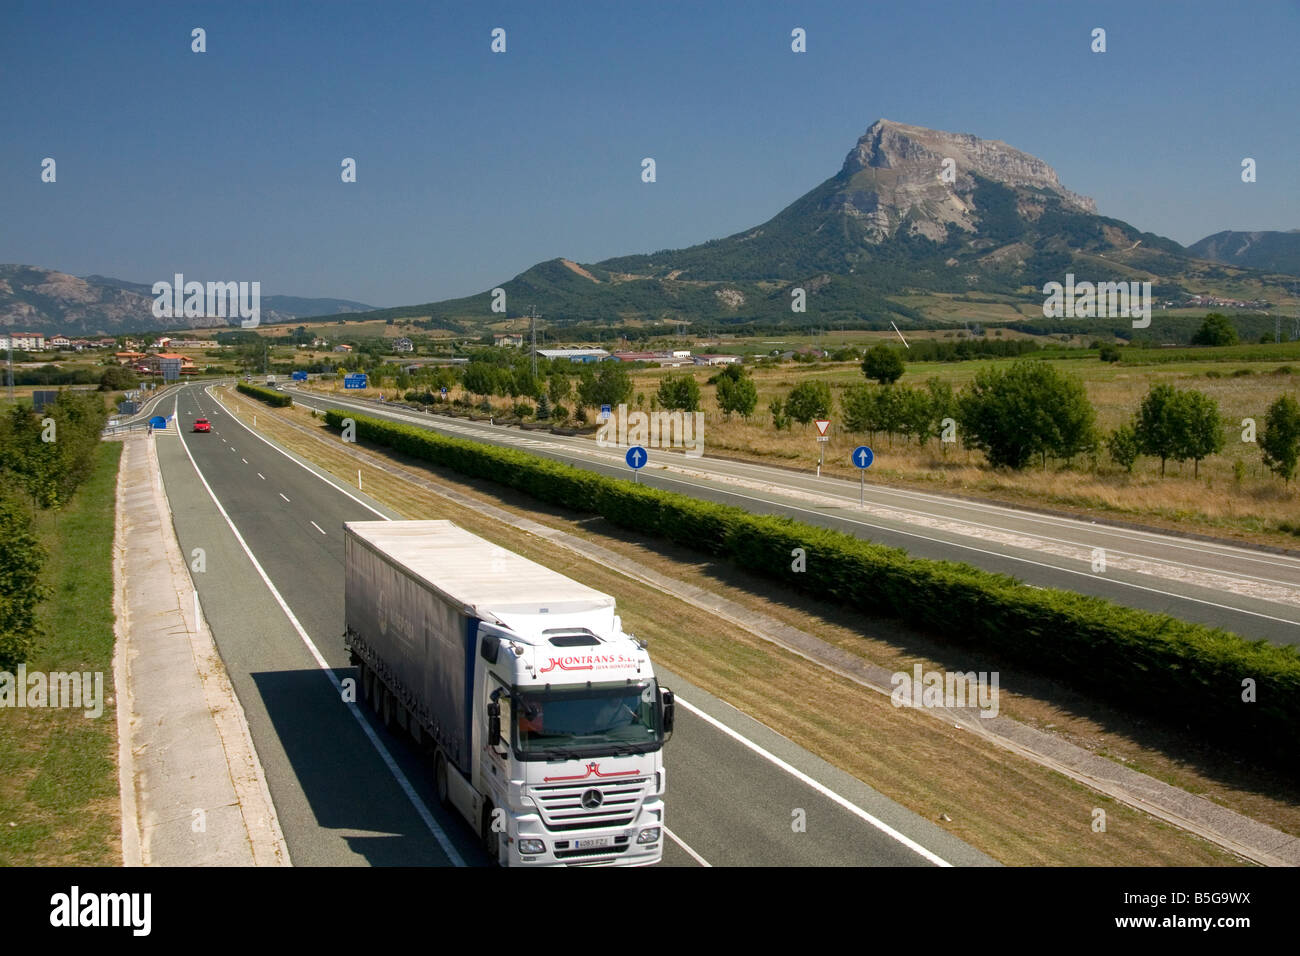 Long haul truck travels along the A 10 Autopista near the town of Etxarri Aranatz Navarre northern Spain - Stock Image